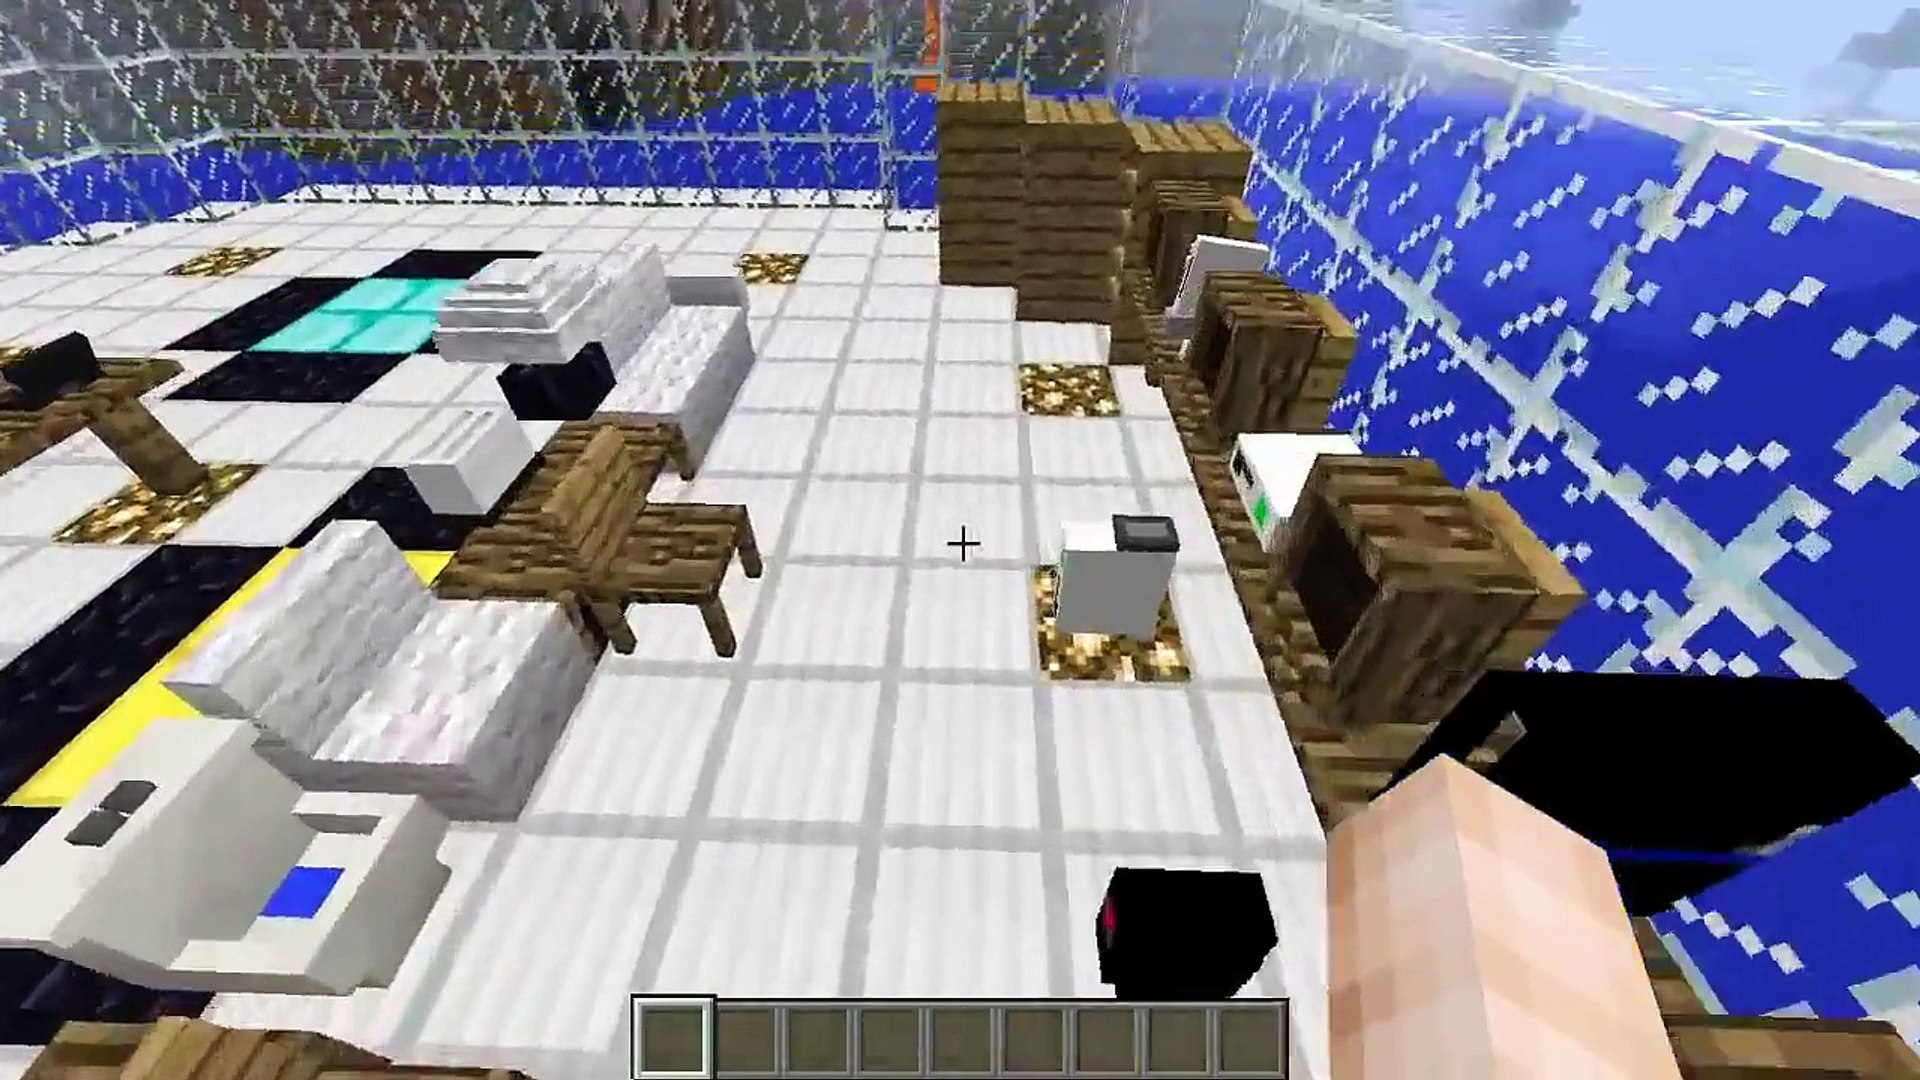 Minecraft Mods   Game Consoles Mod Computers, Xbox, PS4, & Nintendo DS In Minecraft Mod Showcase